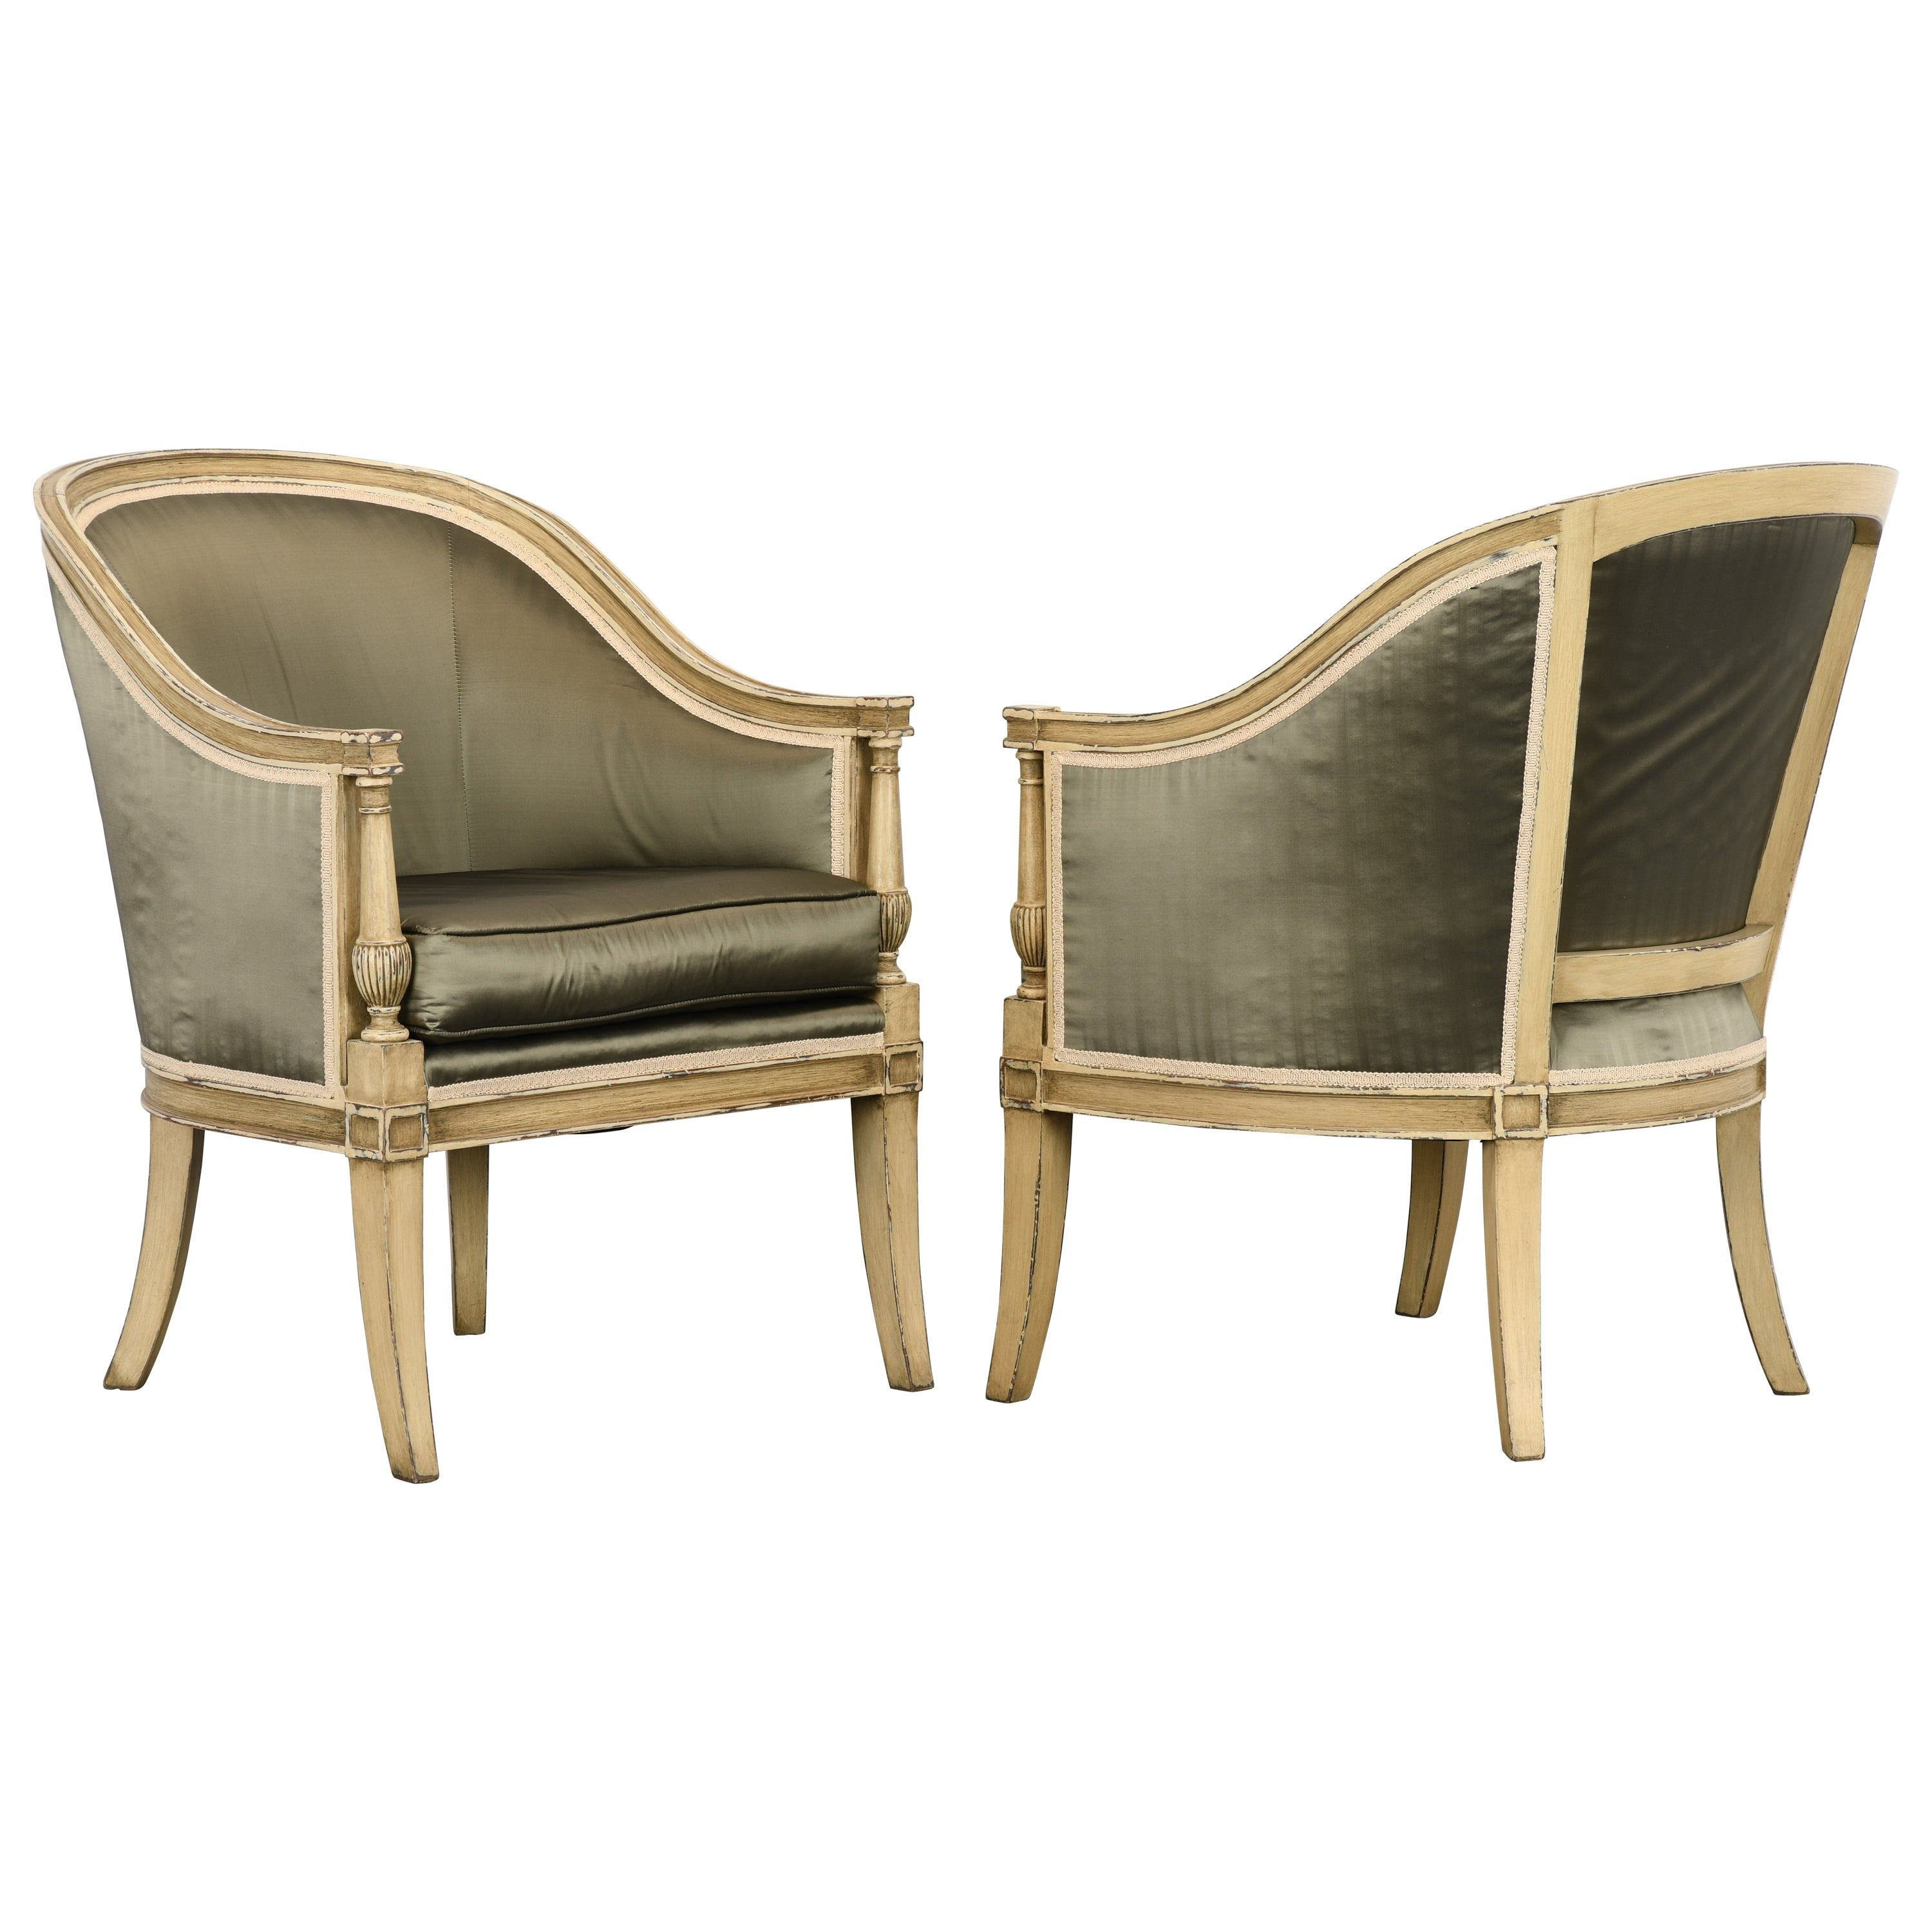 Pair of French Directoire Style Barrel Back Chairs, 1970s